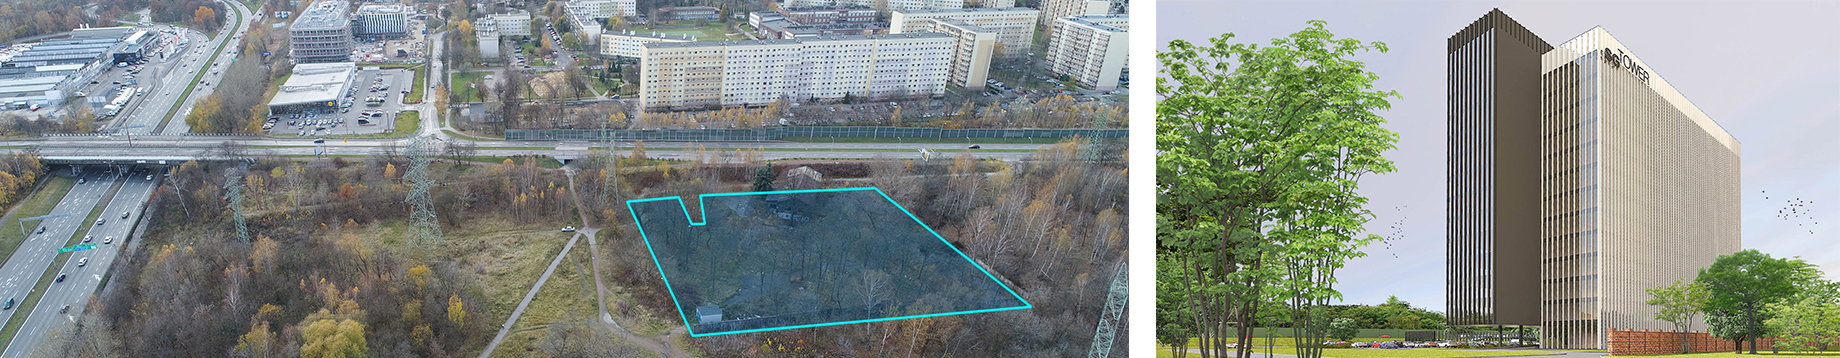 Investment plot in Katowice Bogucice for sale